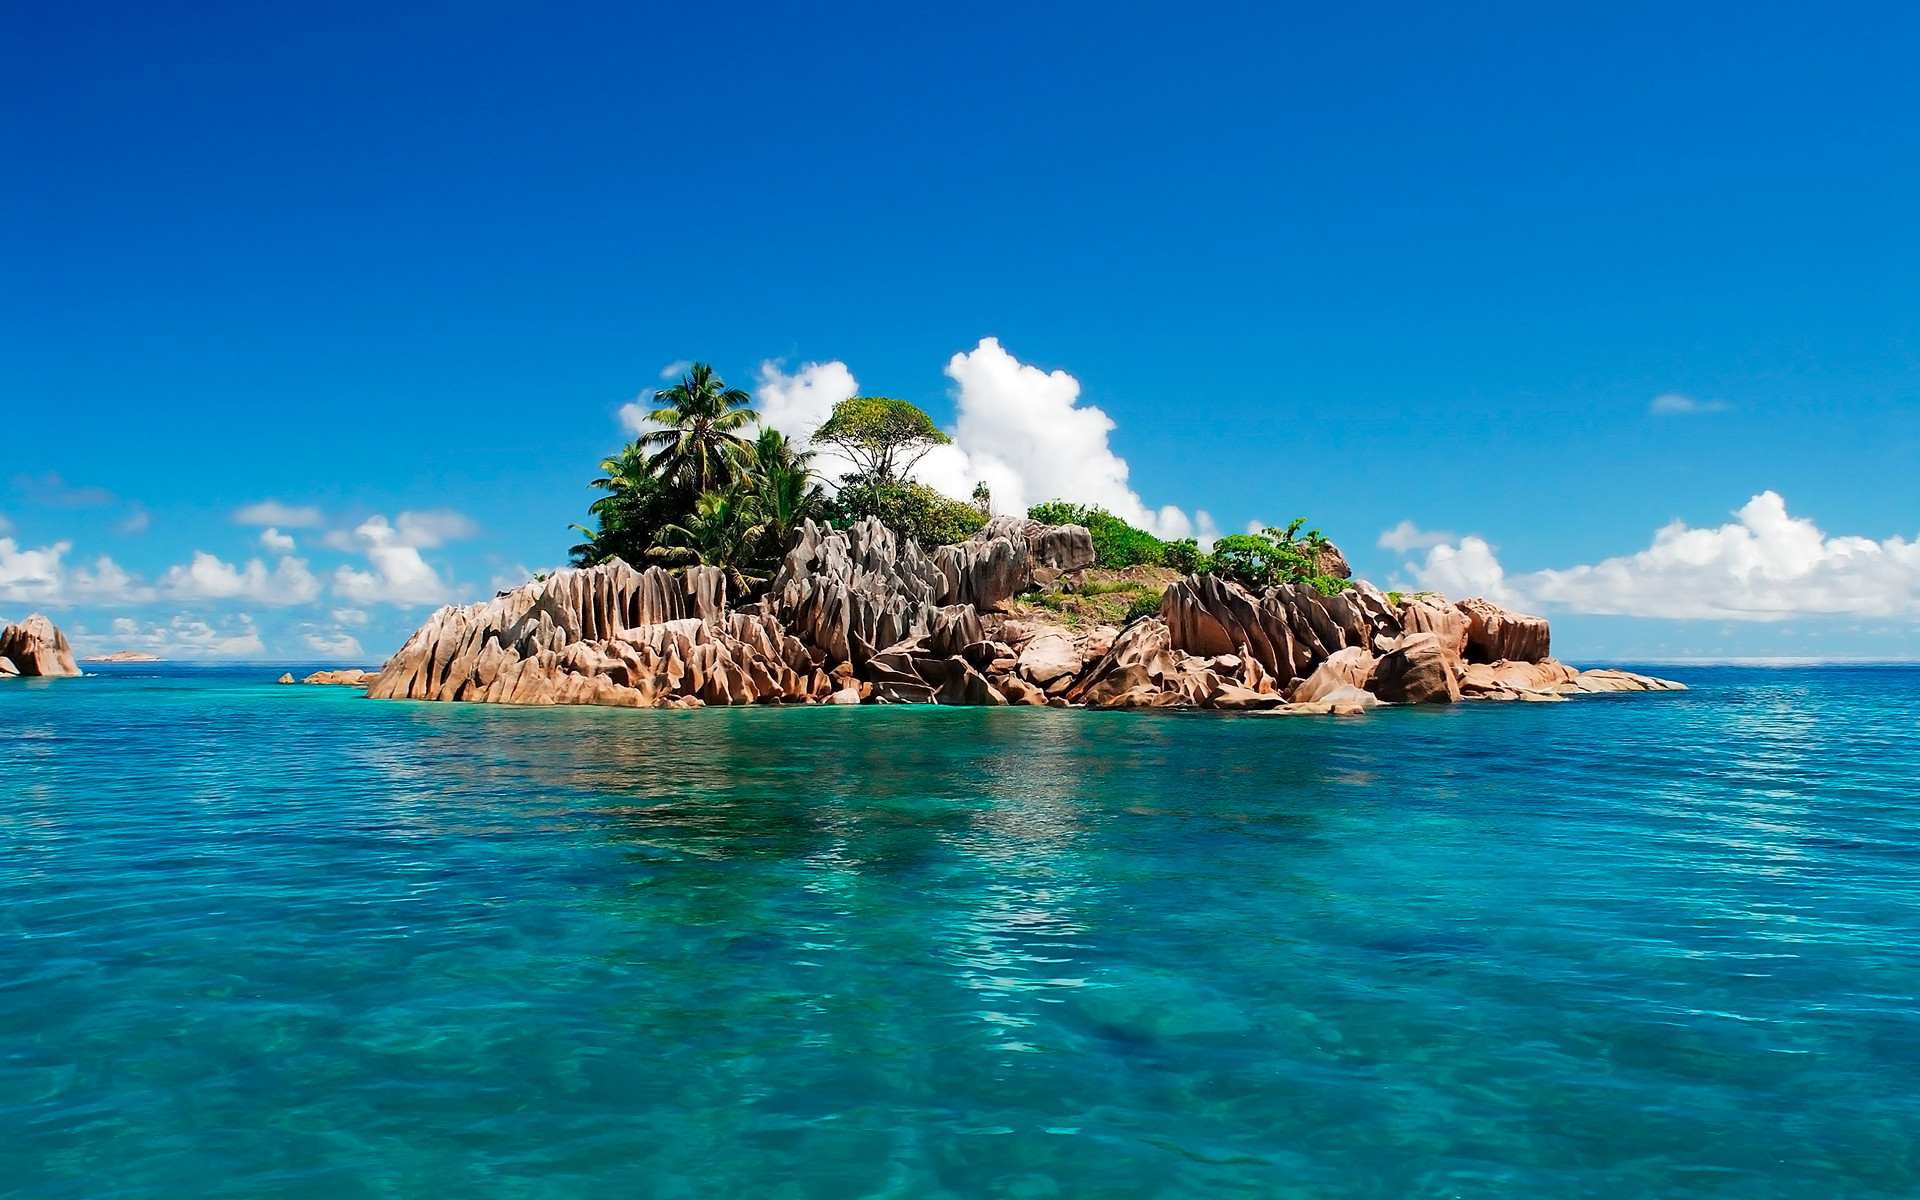 Island Wallpapers For Computer by Yasmin Benson #10